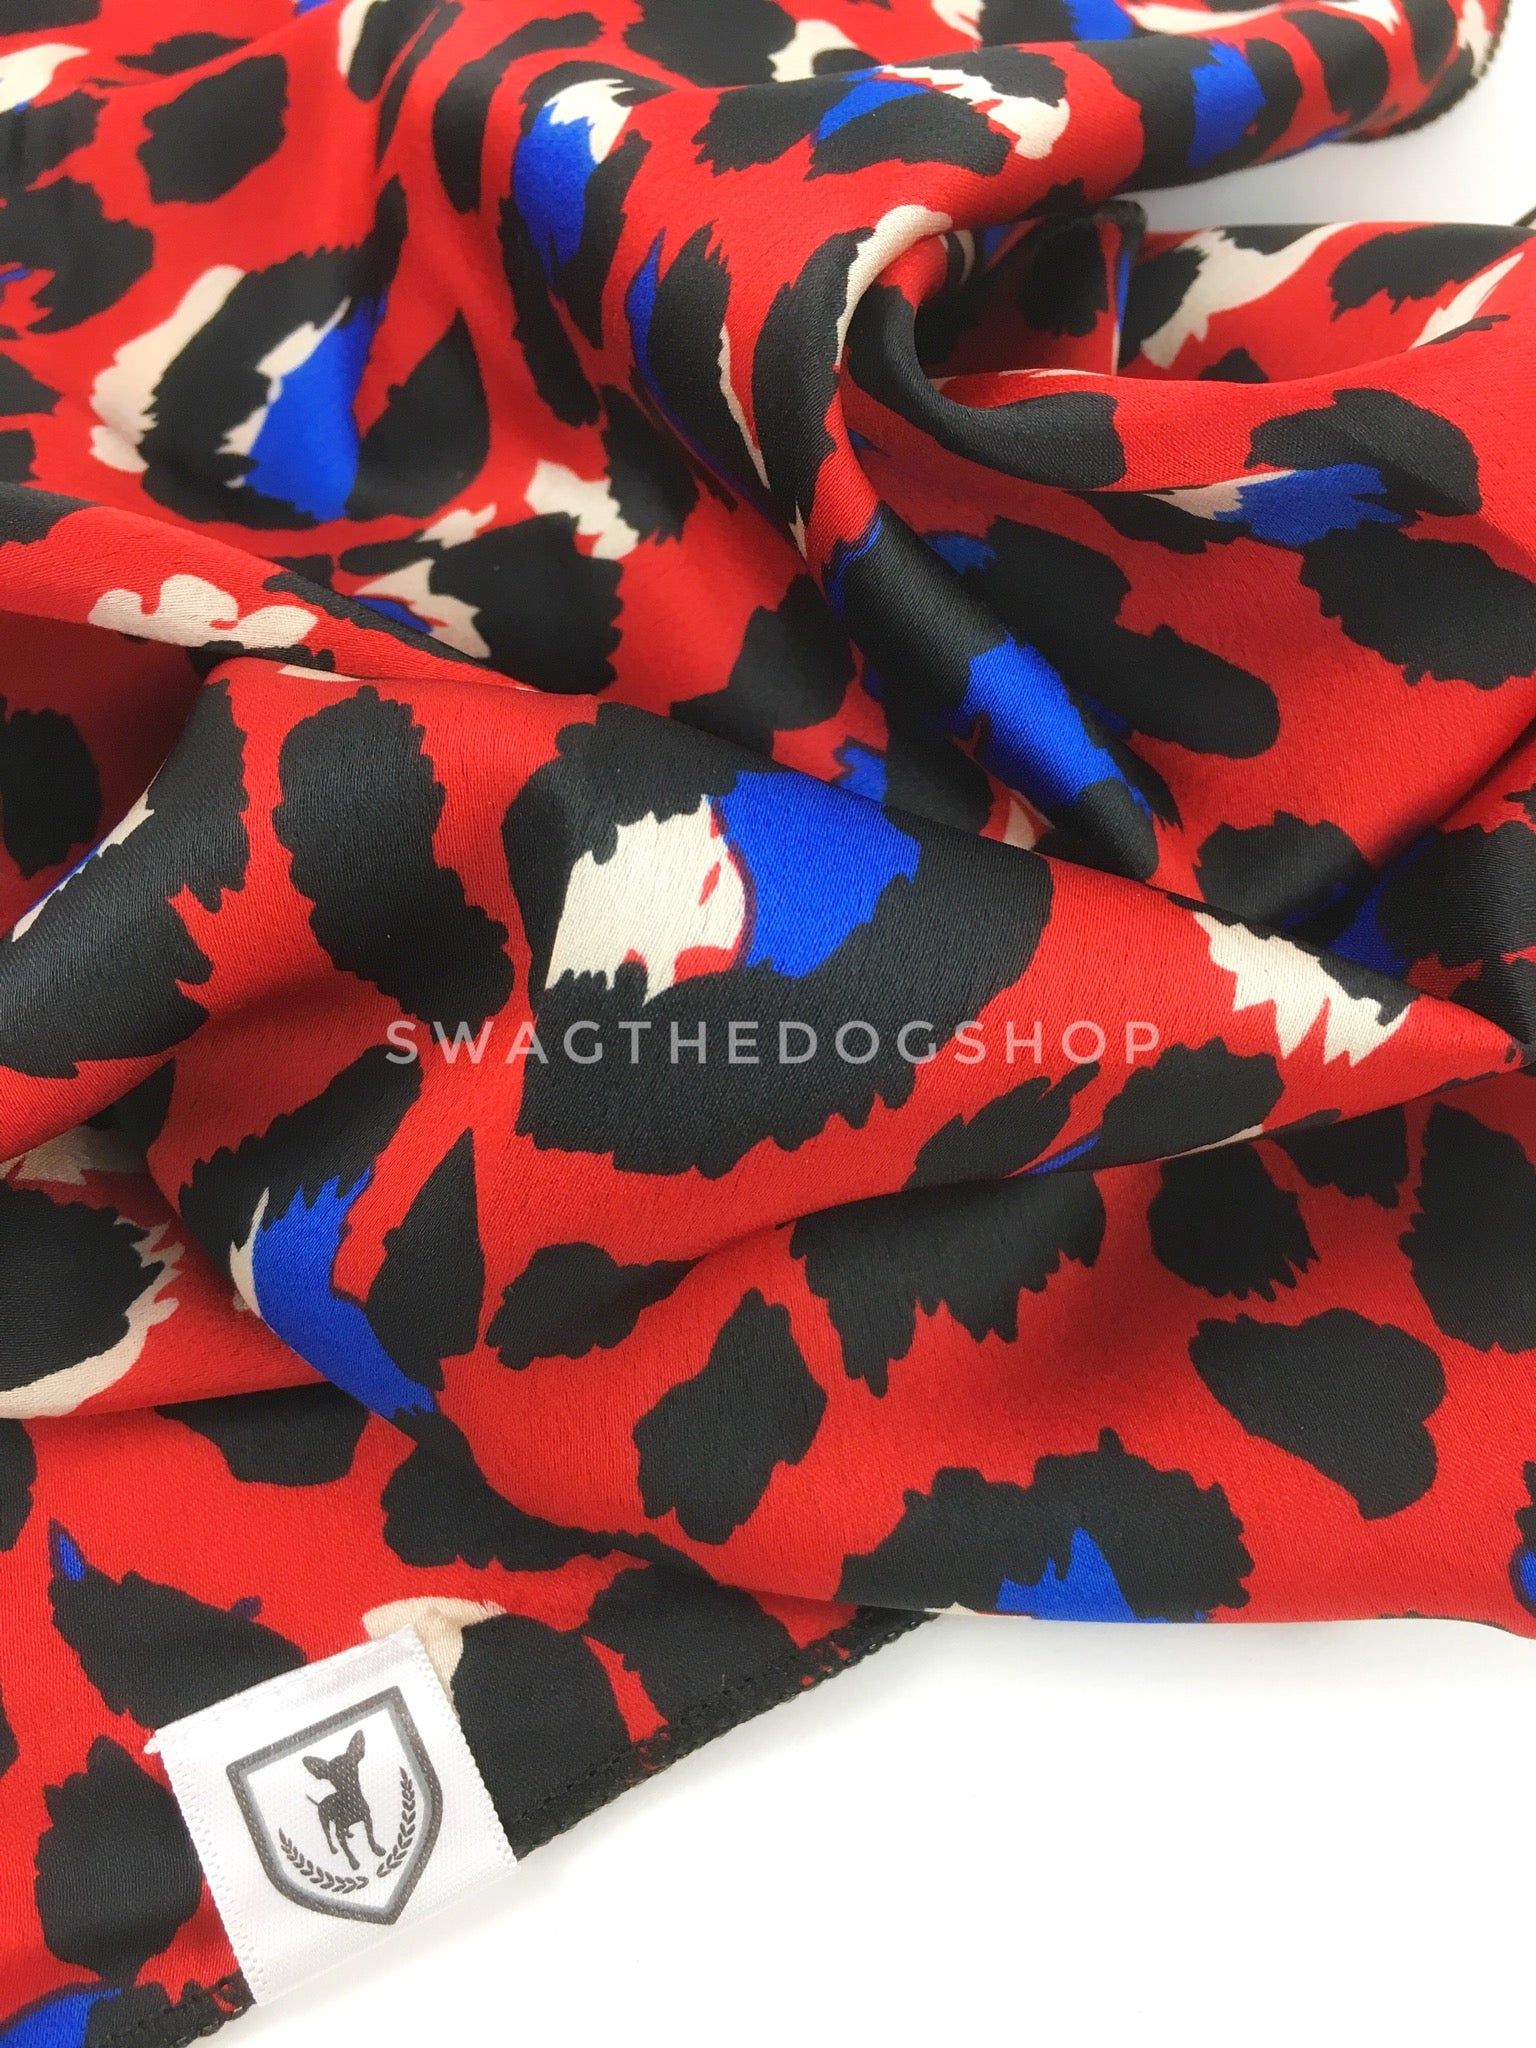 Fierce Vibrant Red with Blue Swagdana Scarf - Close-up View of Product. Dog Bandana. Dog Scarf